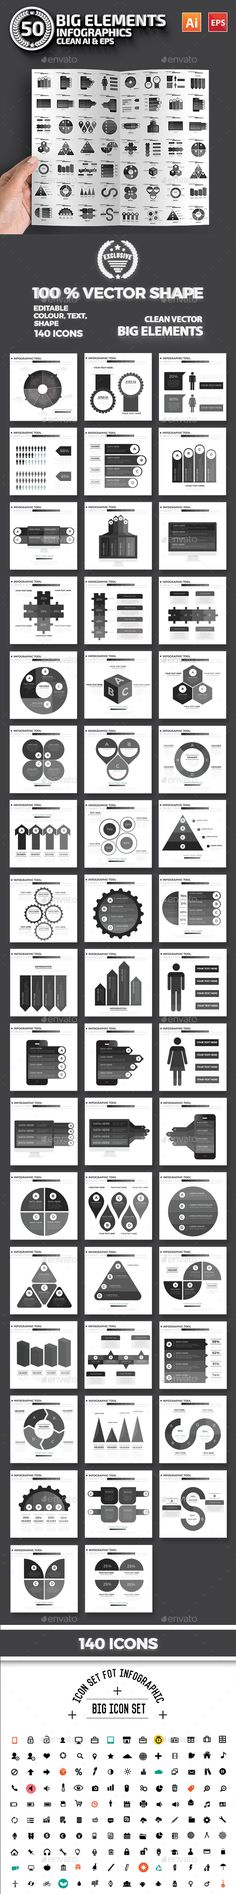 Infographic Tutorial infographic tutorial illustrator cs2 download : Infographic Flat Elements Template Vector EPS, AI. Download here ...